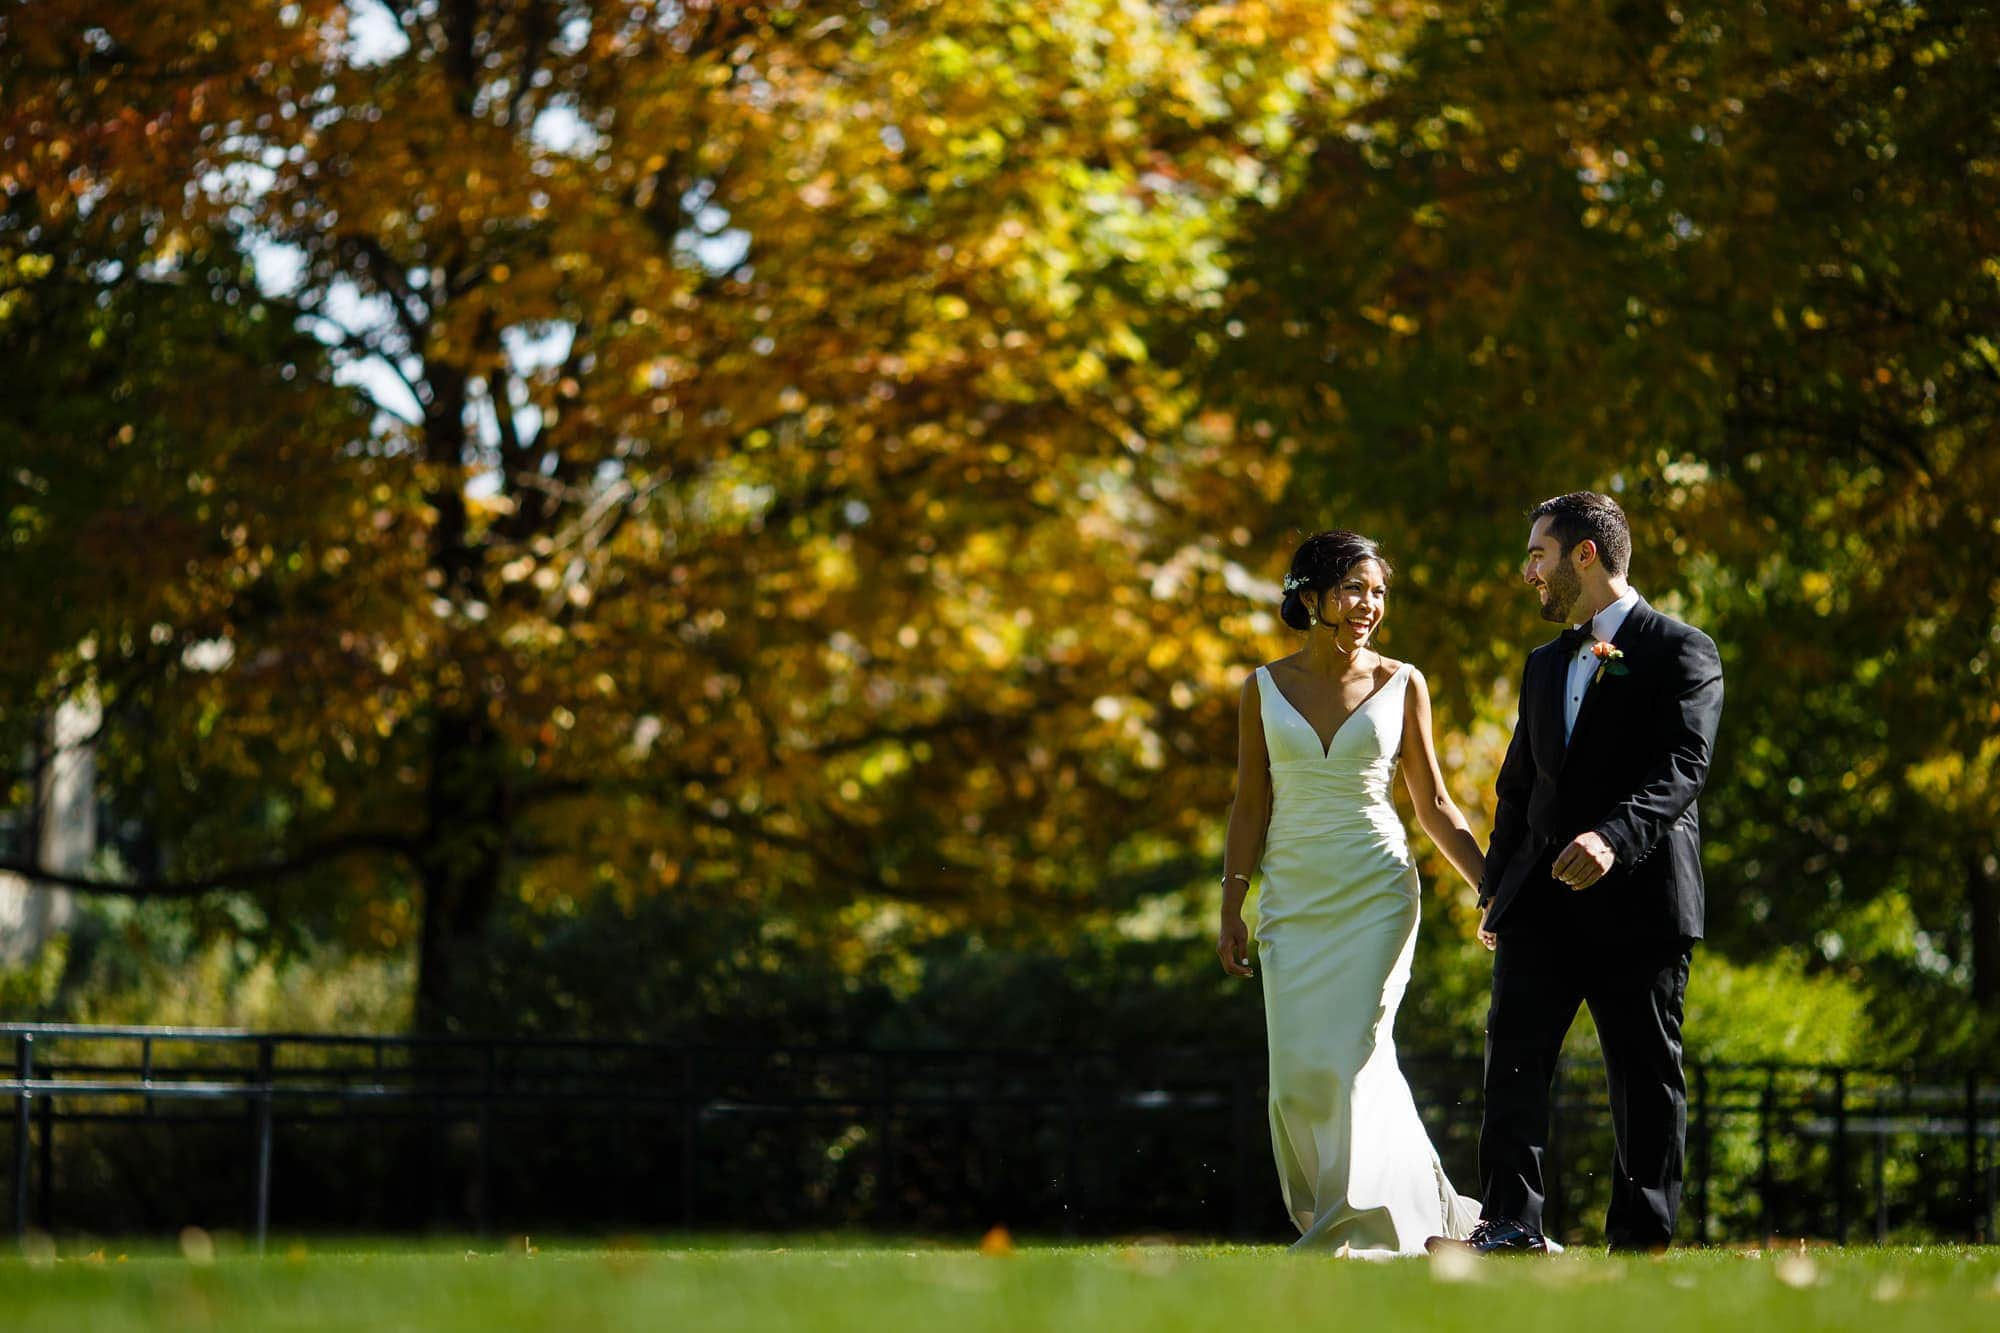 Megan and Bryan walk on Norlin Quad on the University of Colorado campus before their wedding